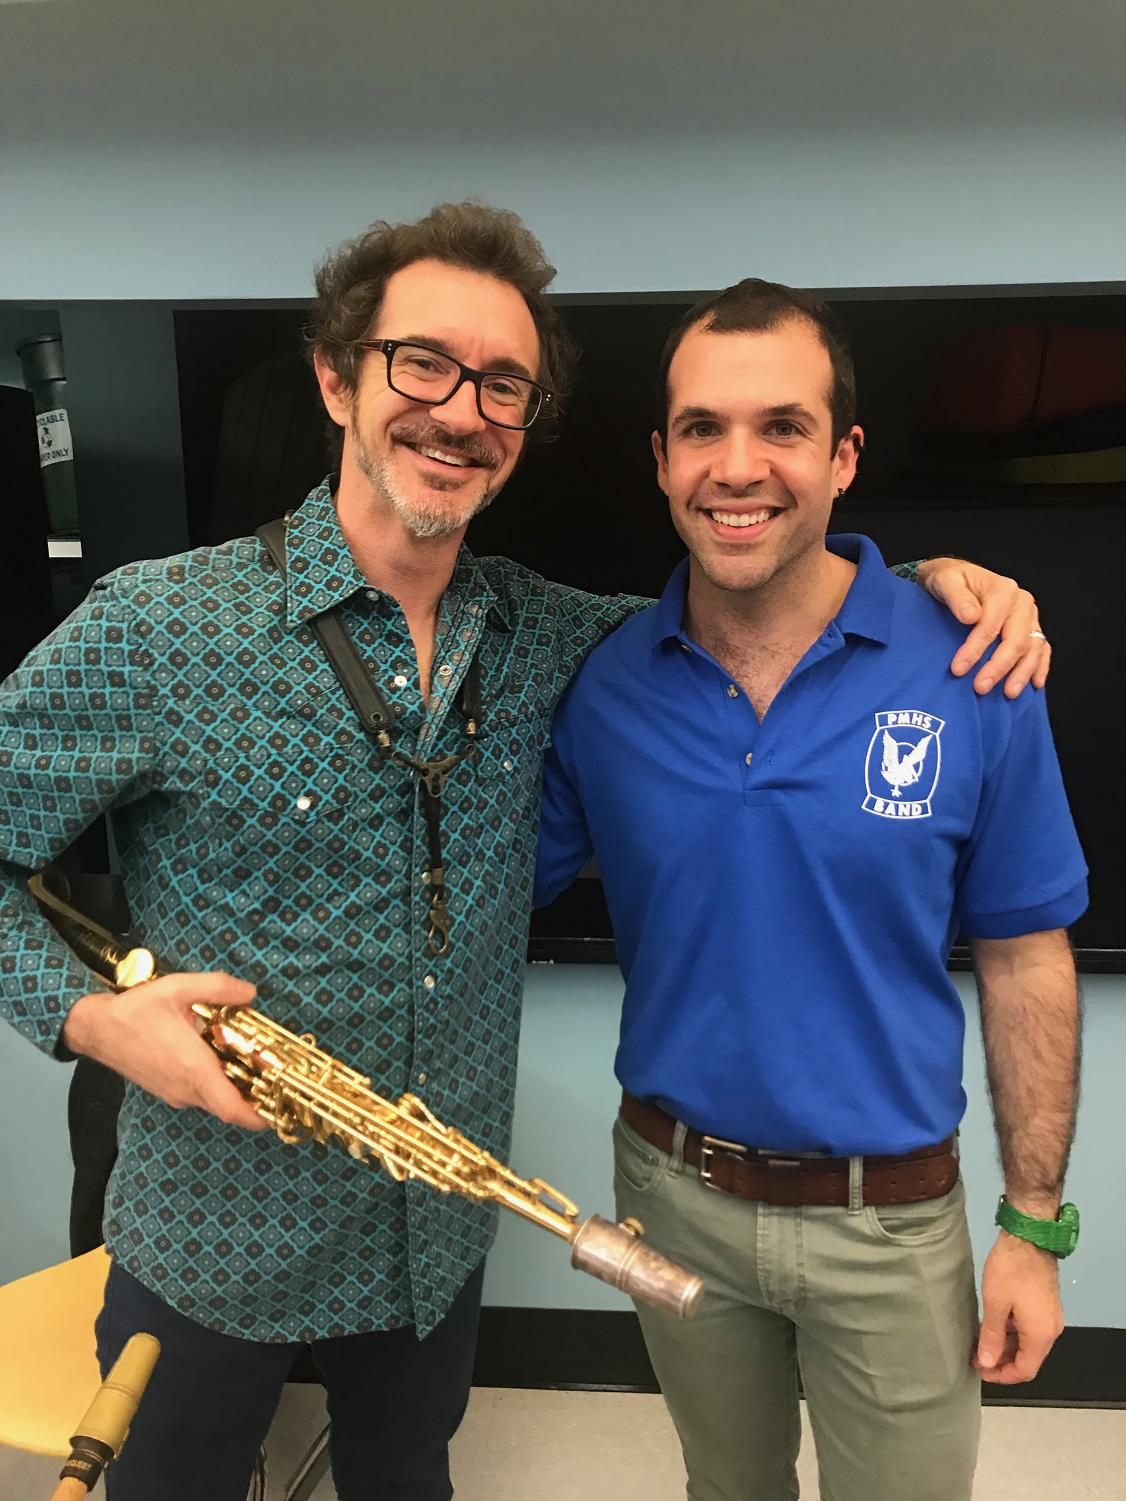 Mr. Van Bochove celebrates with musician Sean Nowell, who works with the jazz band.